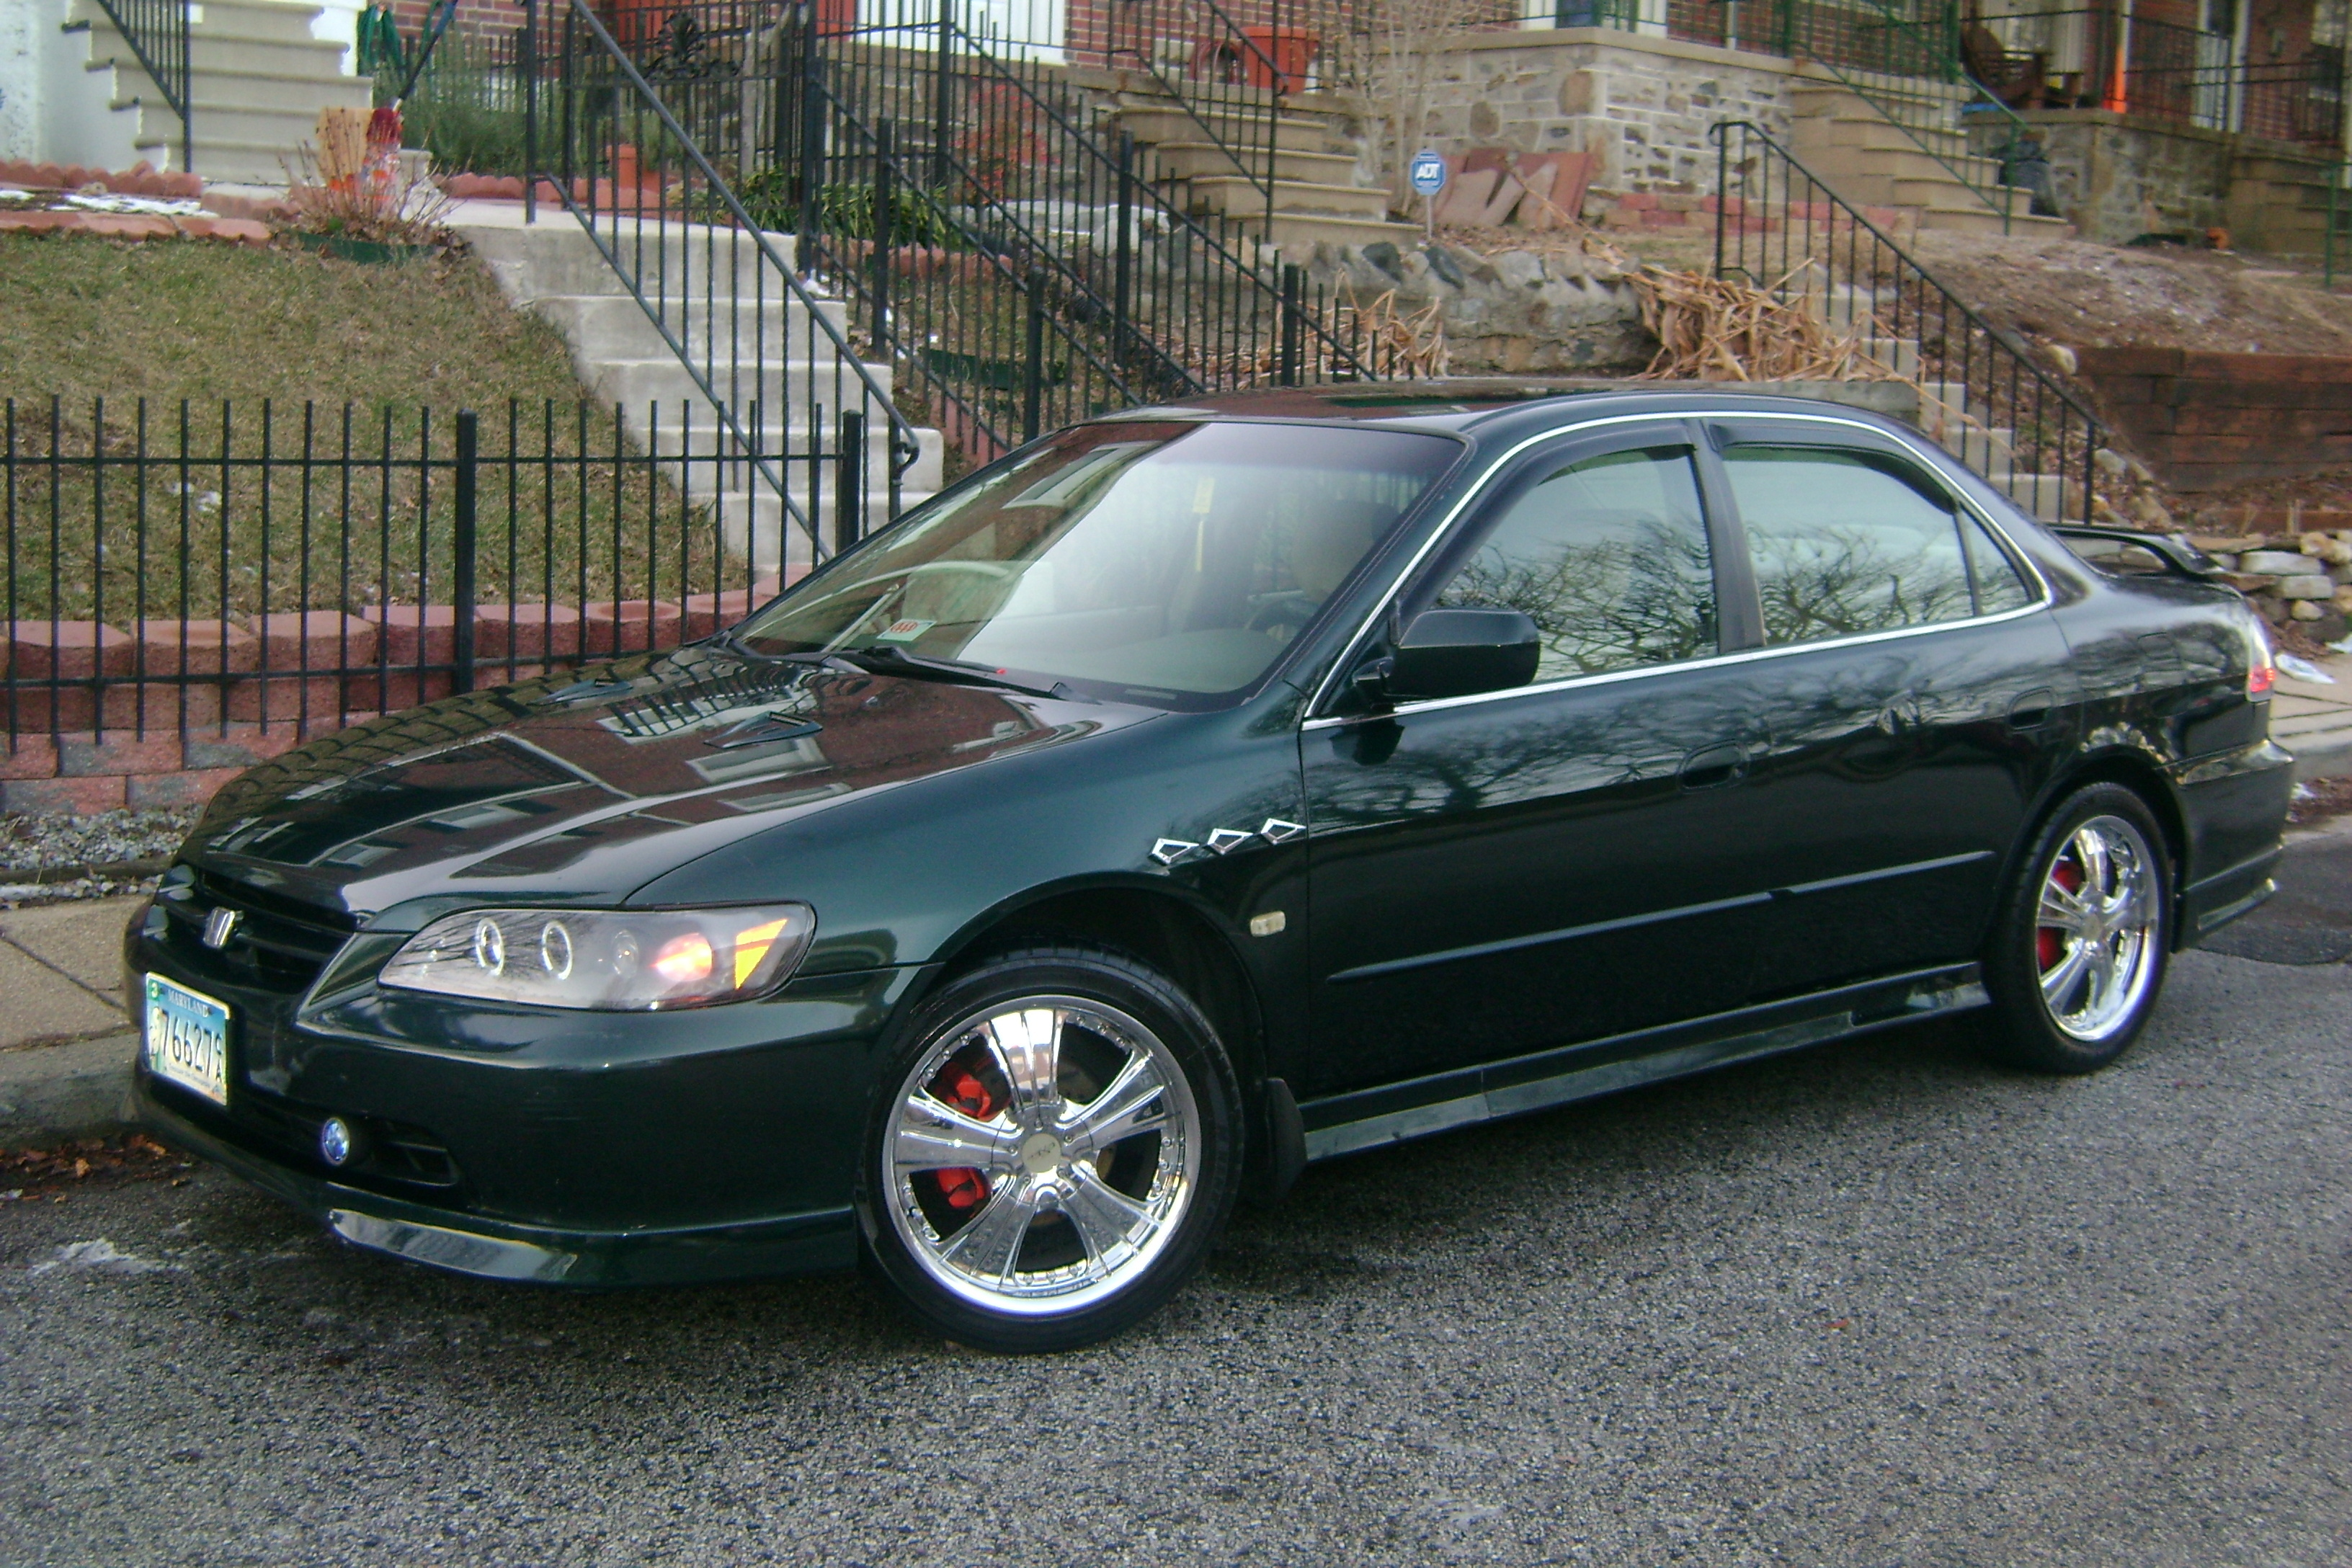 Bull_002's 2000 Honda Accord